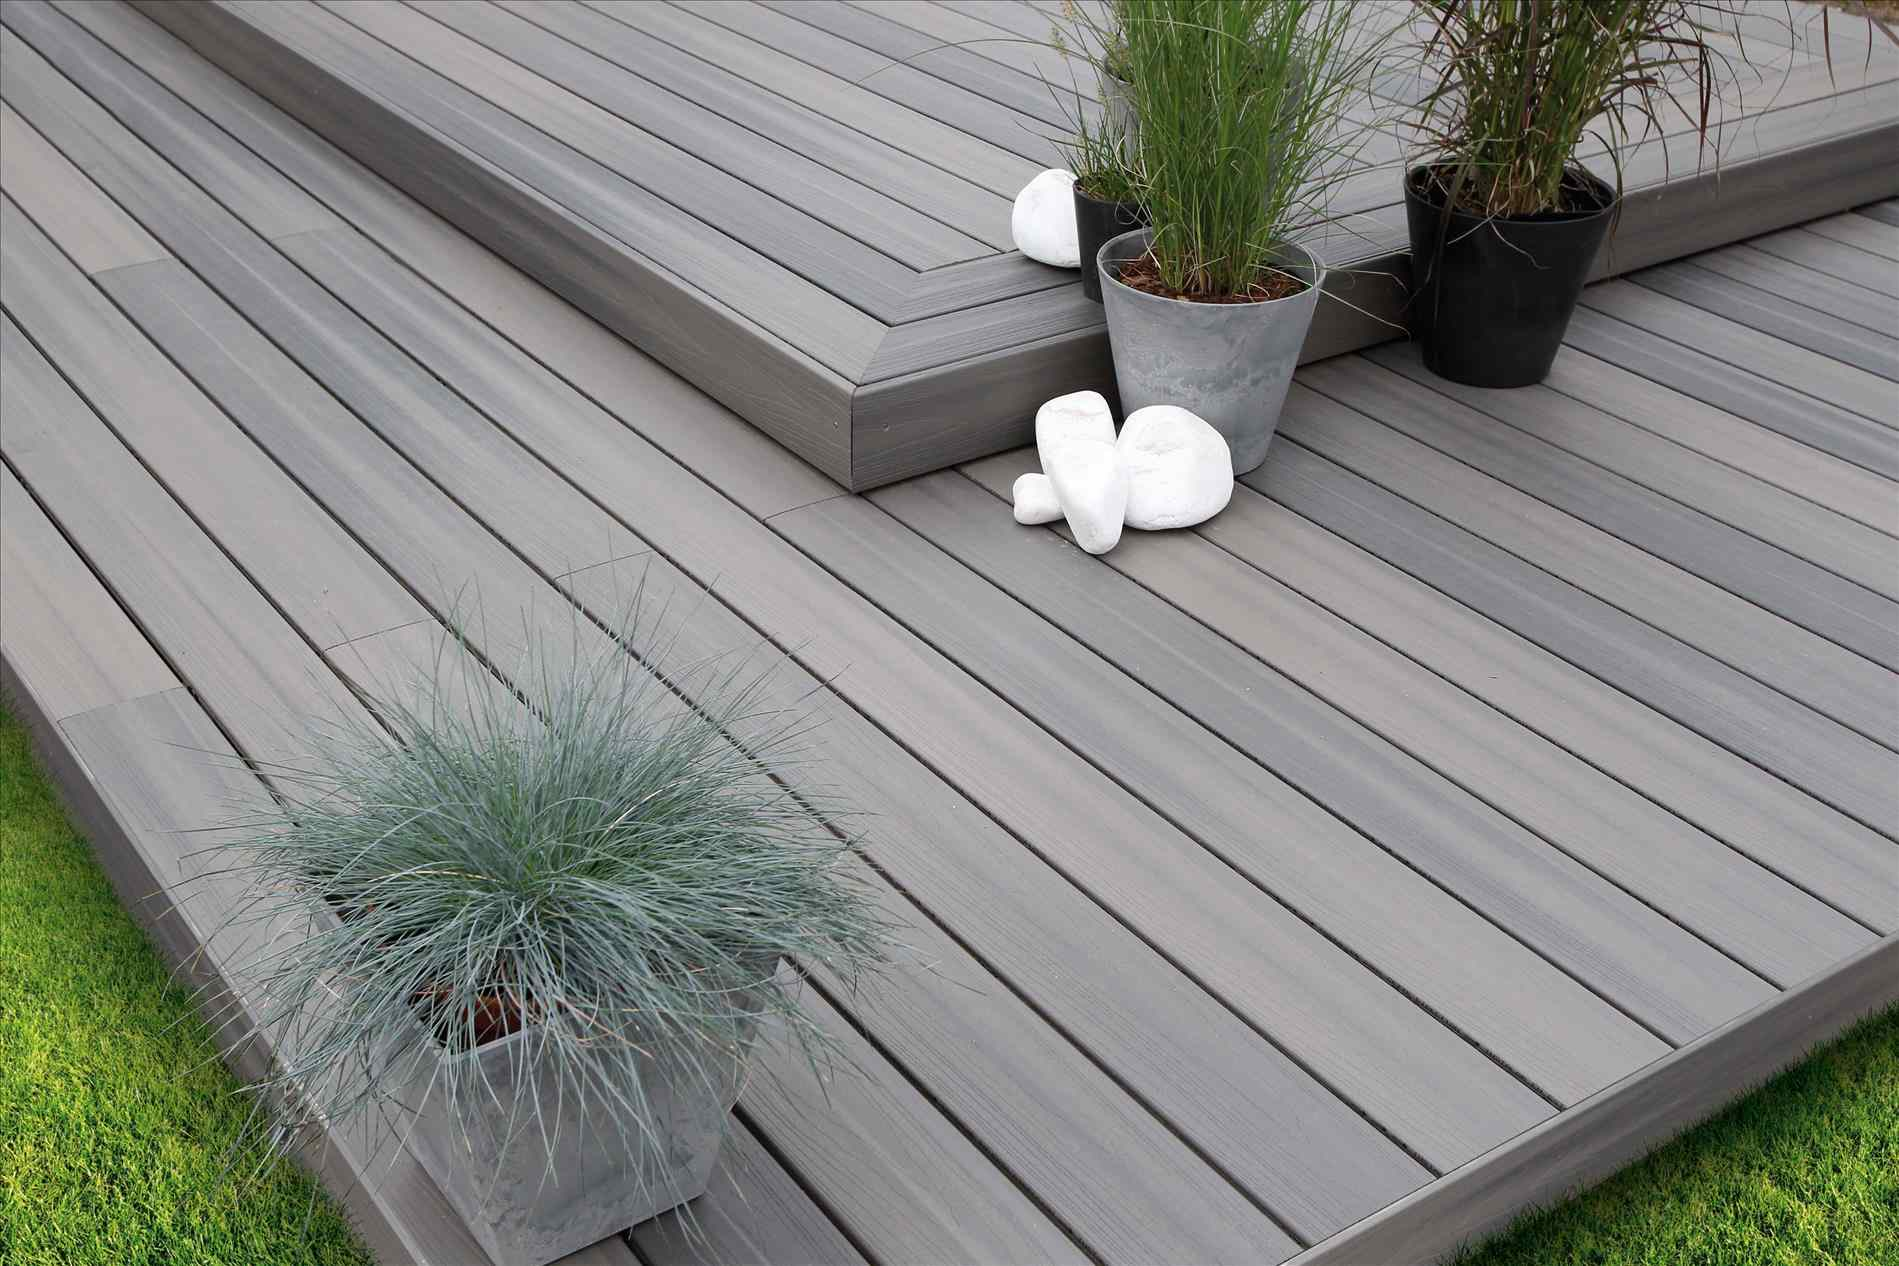 Veranda Composite Decking | Veranda Armor Guard | Composite Deck Railing